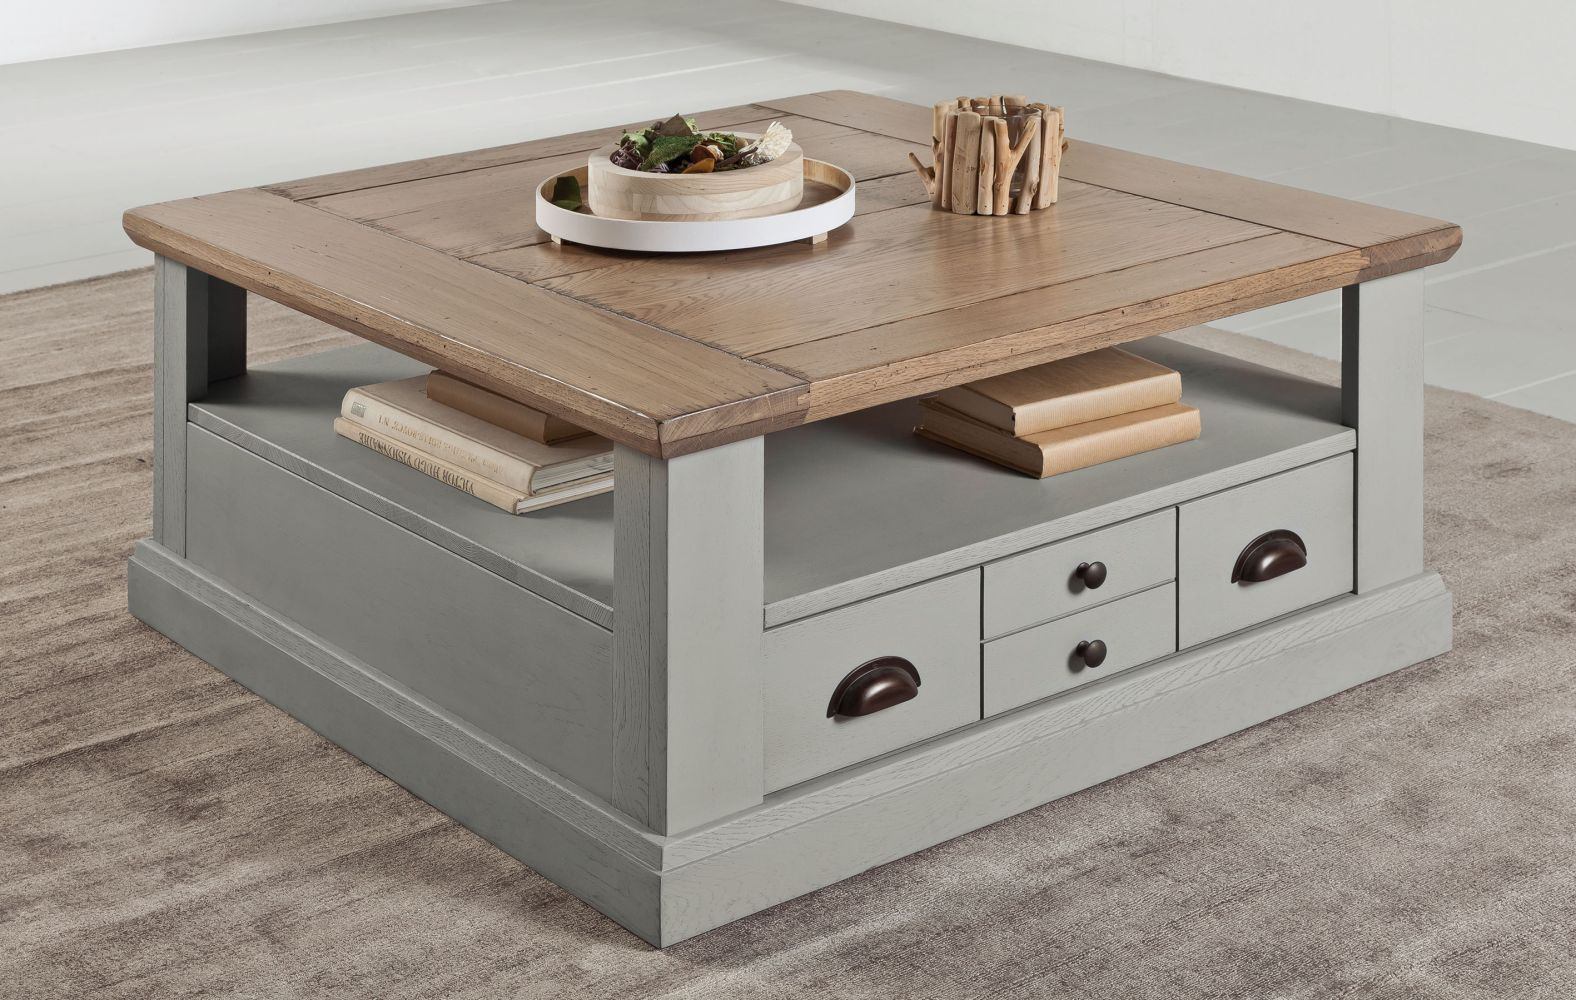 Comment Patiner Une Table table basse romance style campagne chic chene patine grise